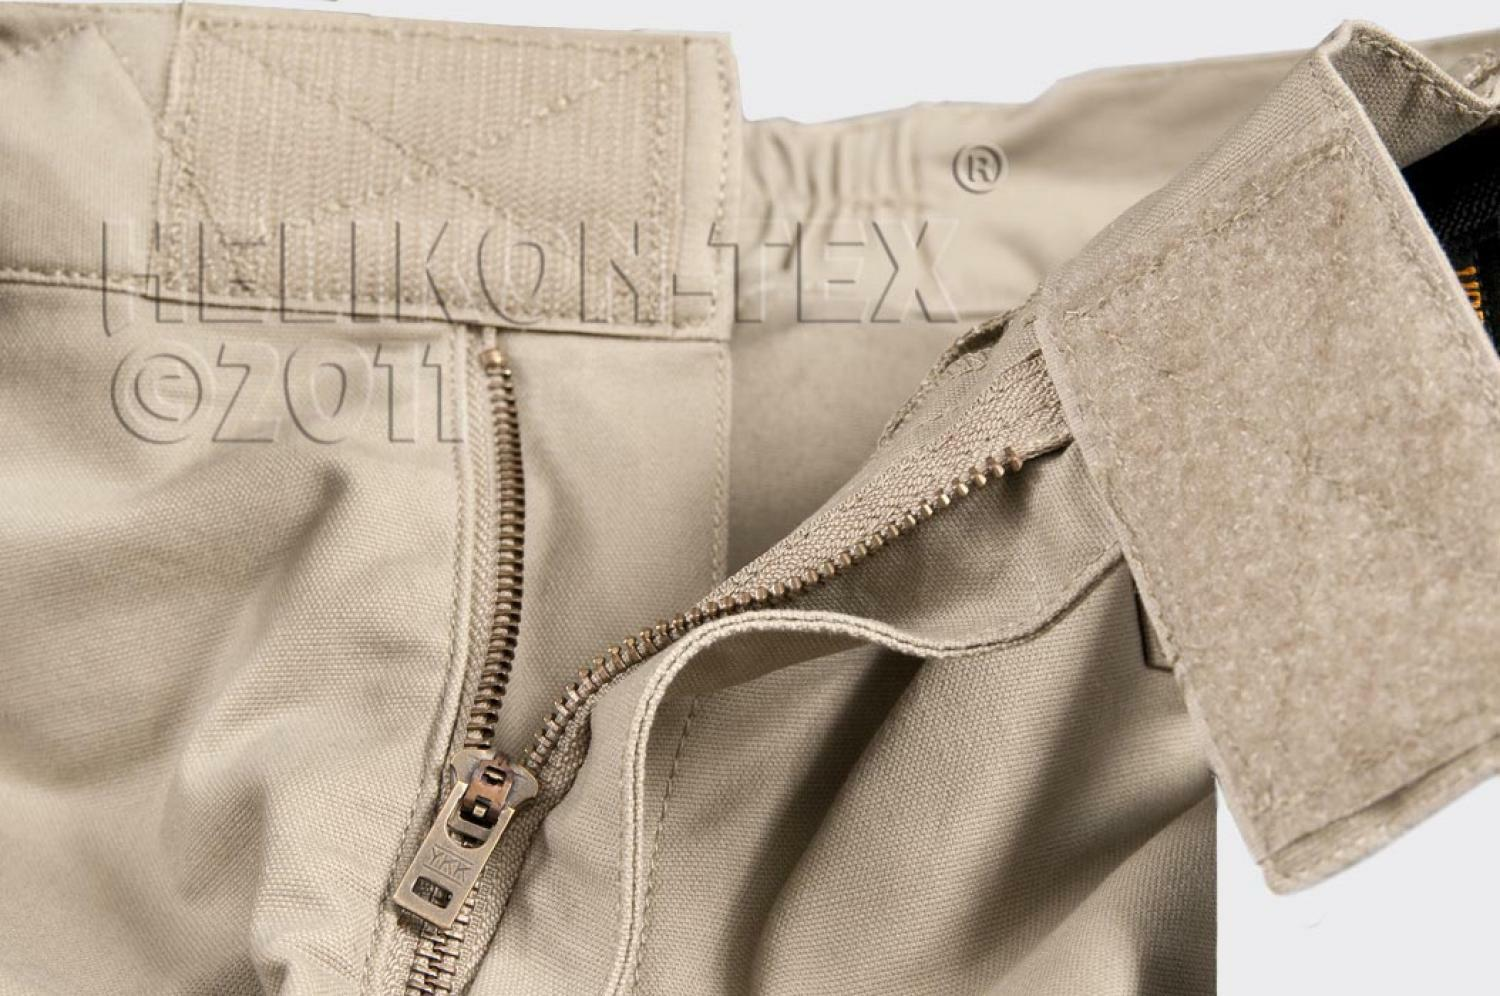 HELIKON TEX UTP Hose URBAN TACTICAL OUTDOOR PANTS Hose UTP Jungle Grün SR Small Regular 929858